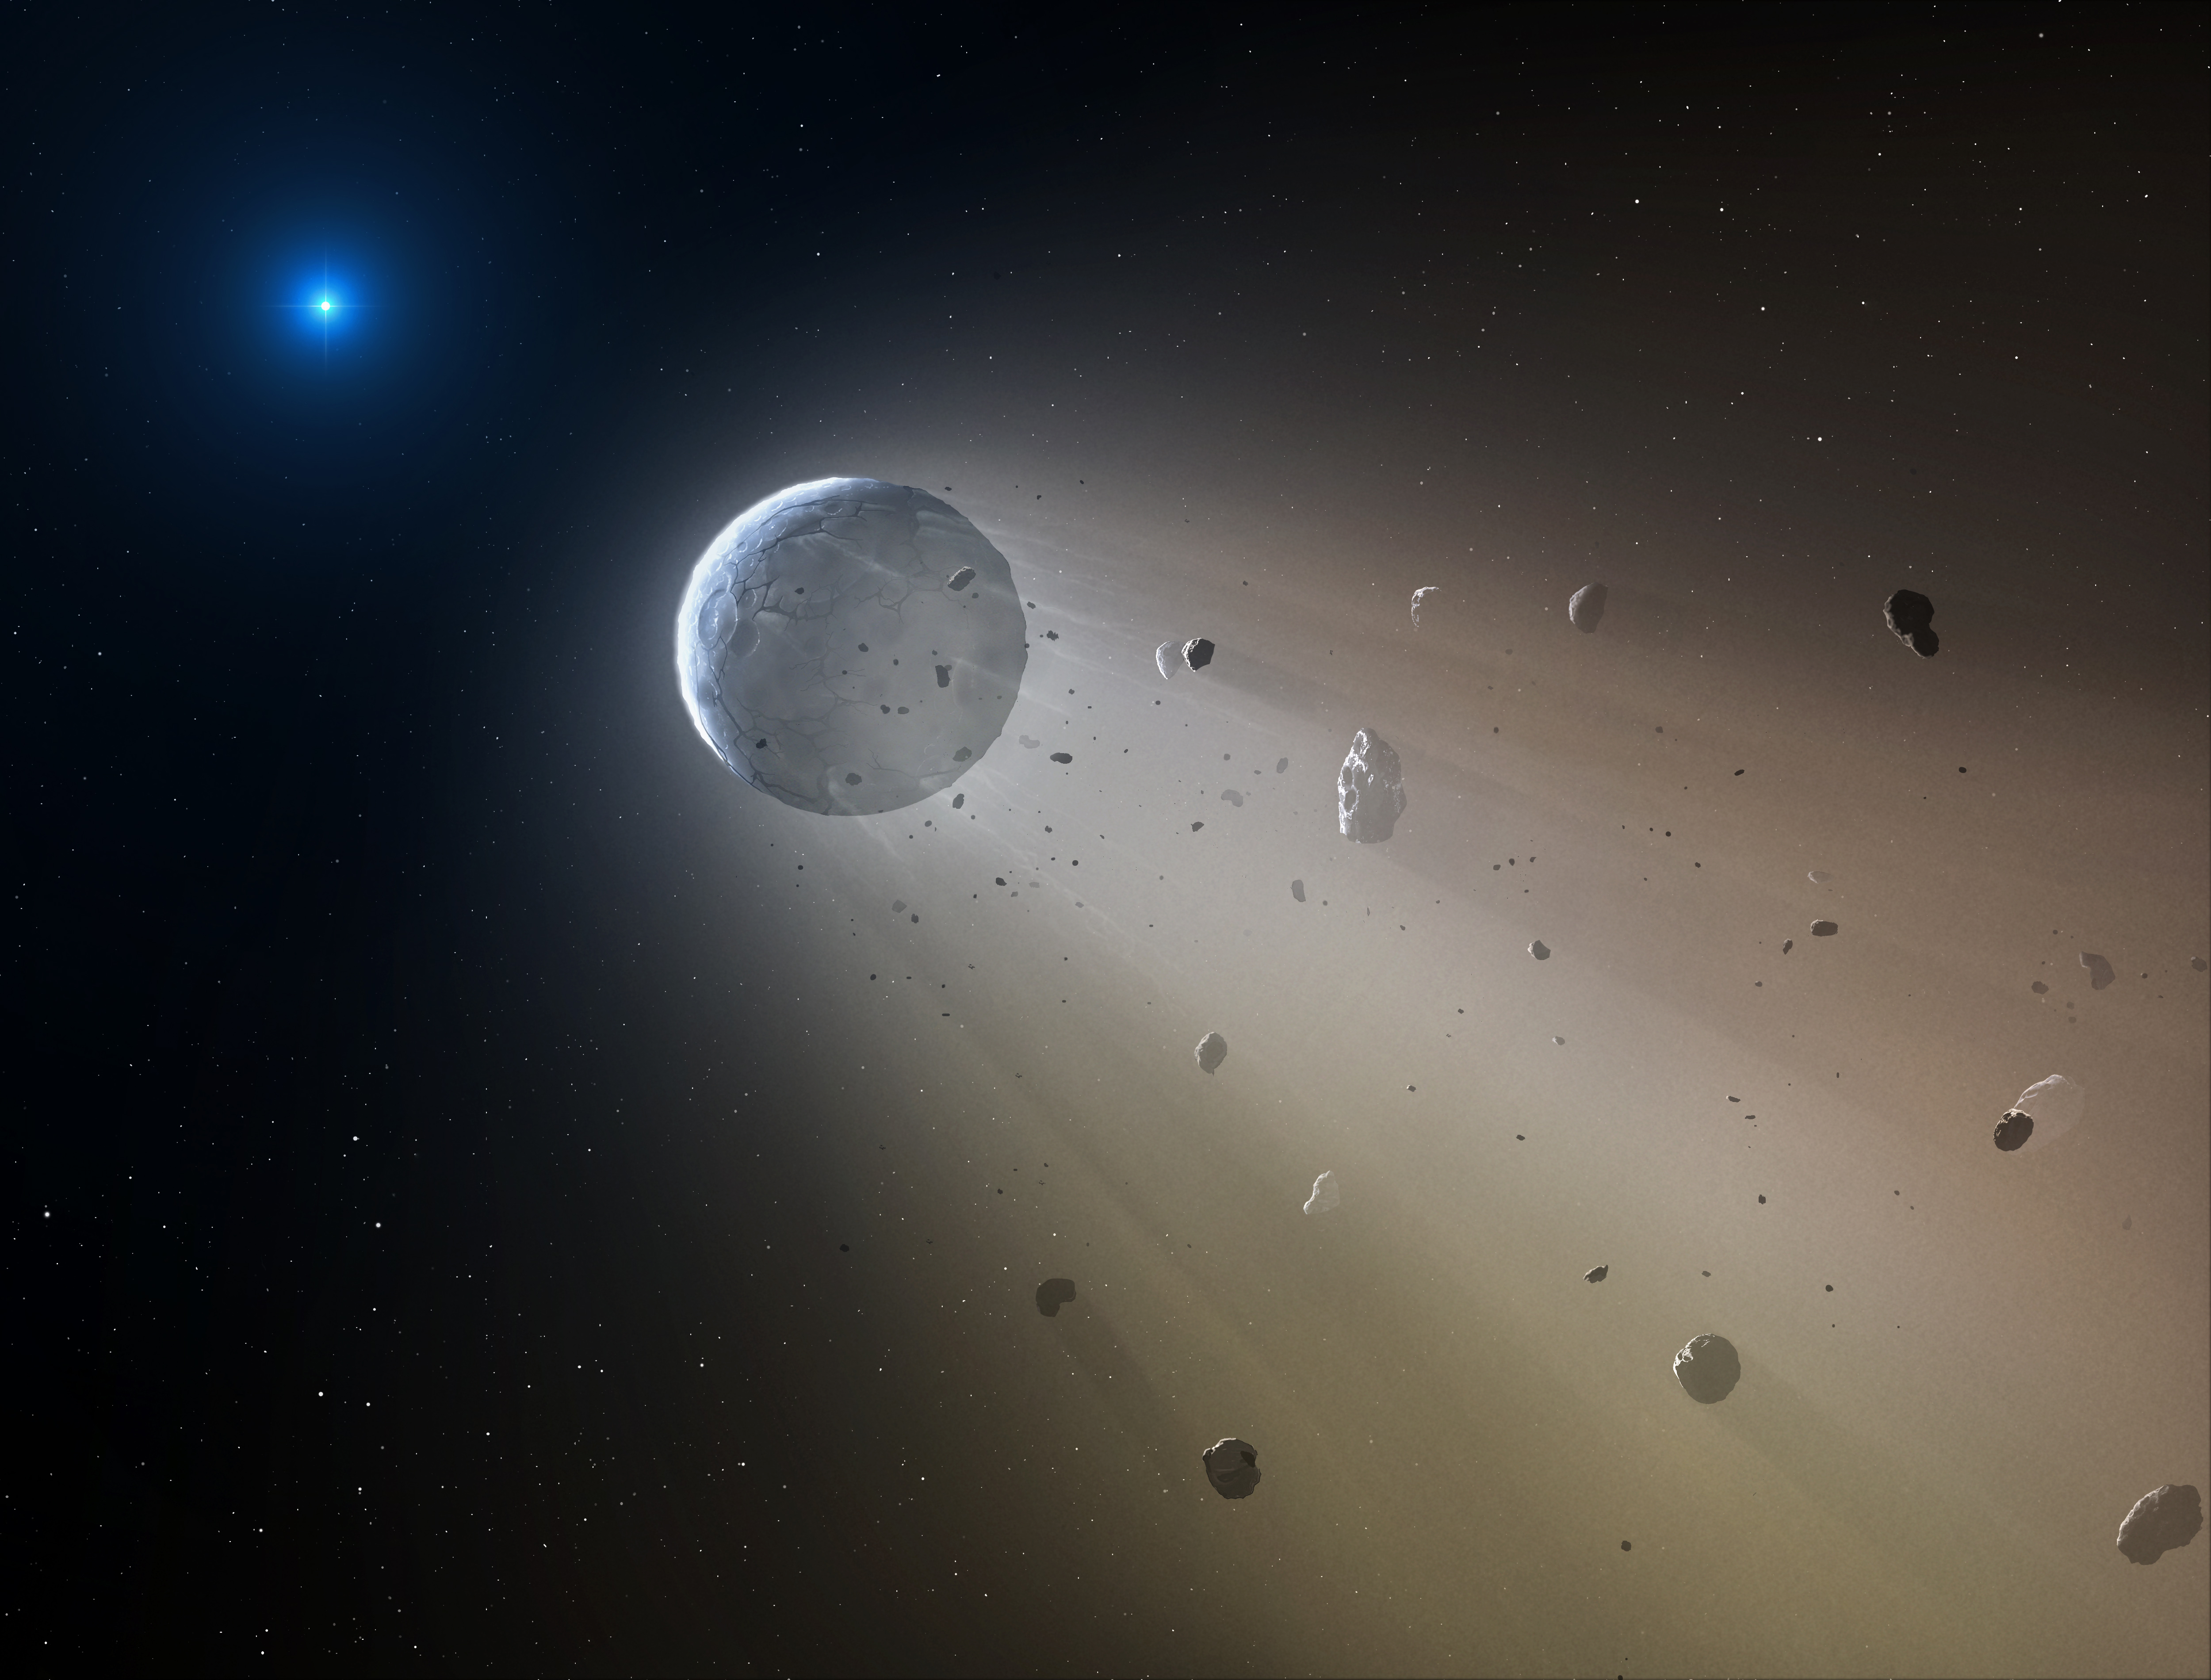 Nasa S K2 Finds Dead Star Vaporizing A Mini Planet The Center For Planetary Science